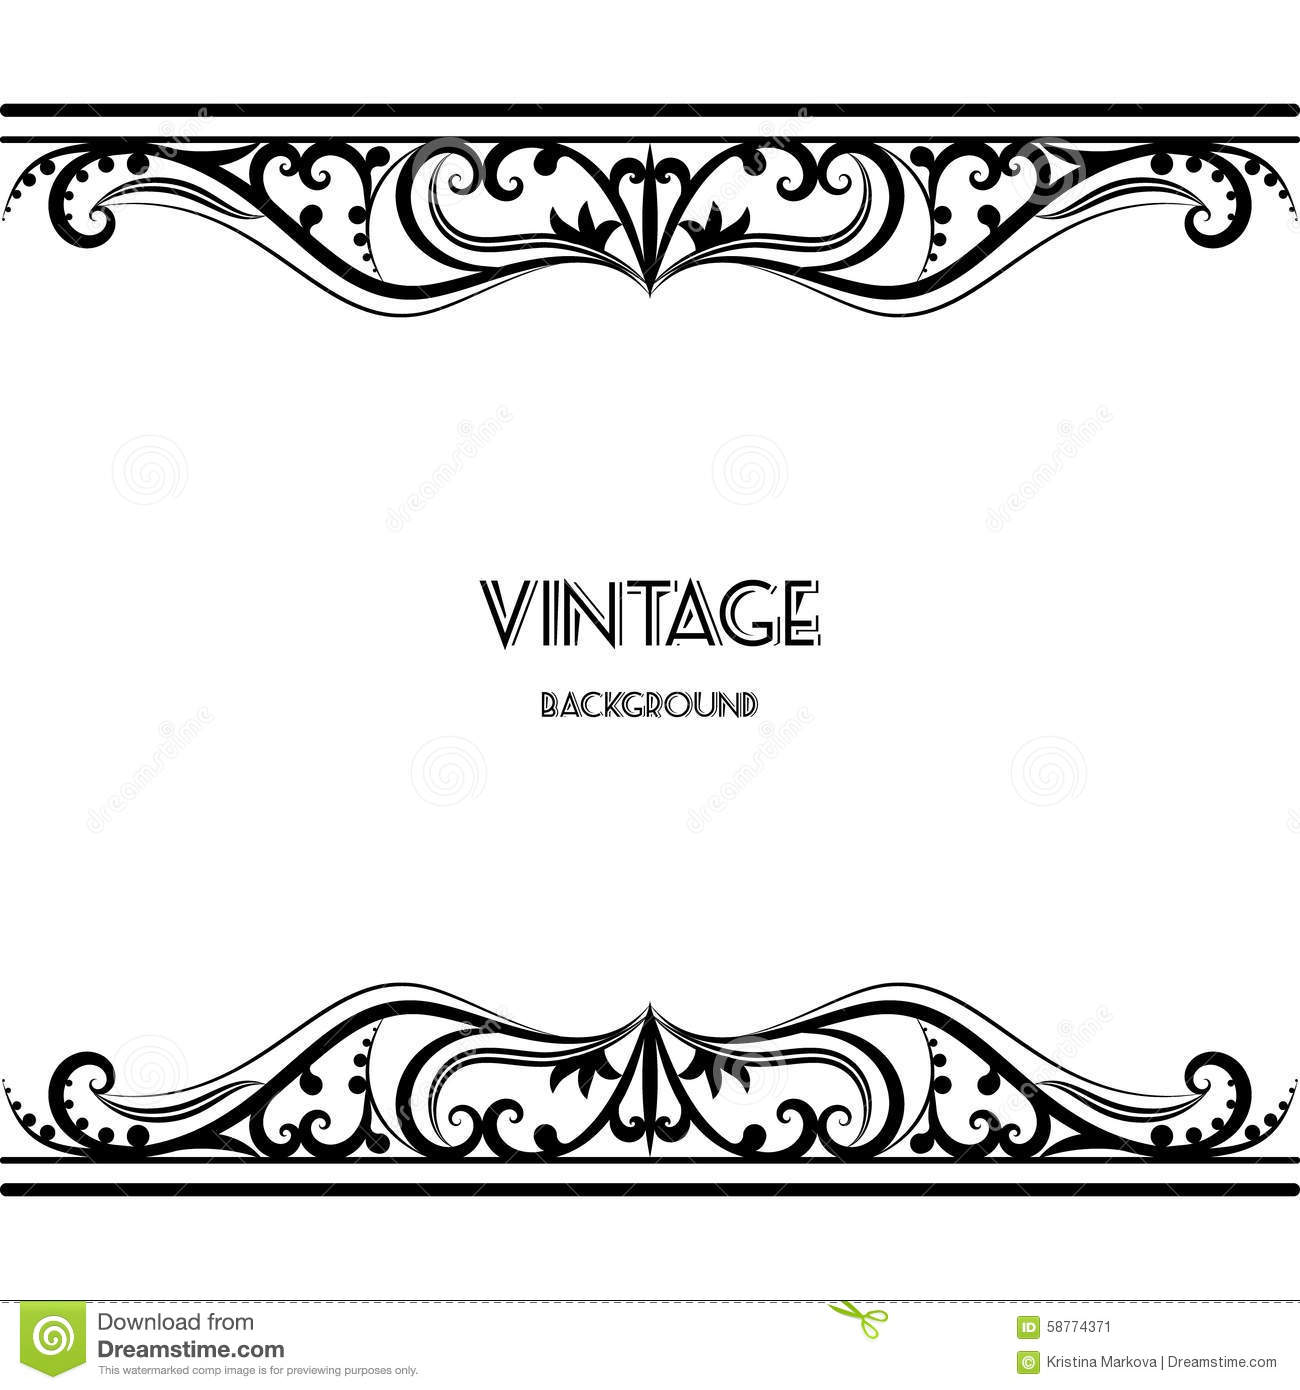 Vintage Background Frame Design Black Vector